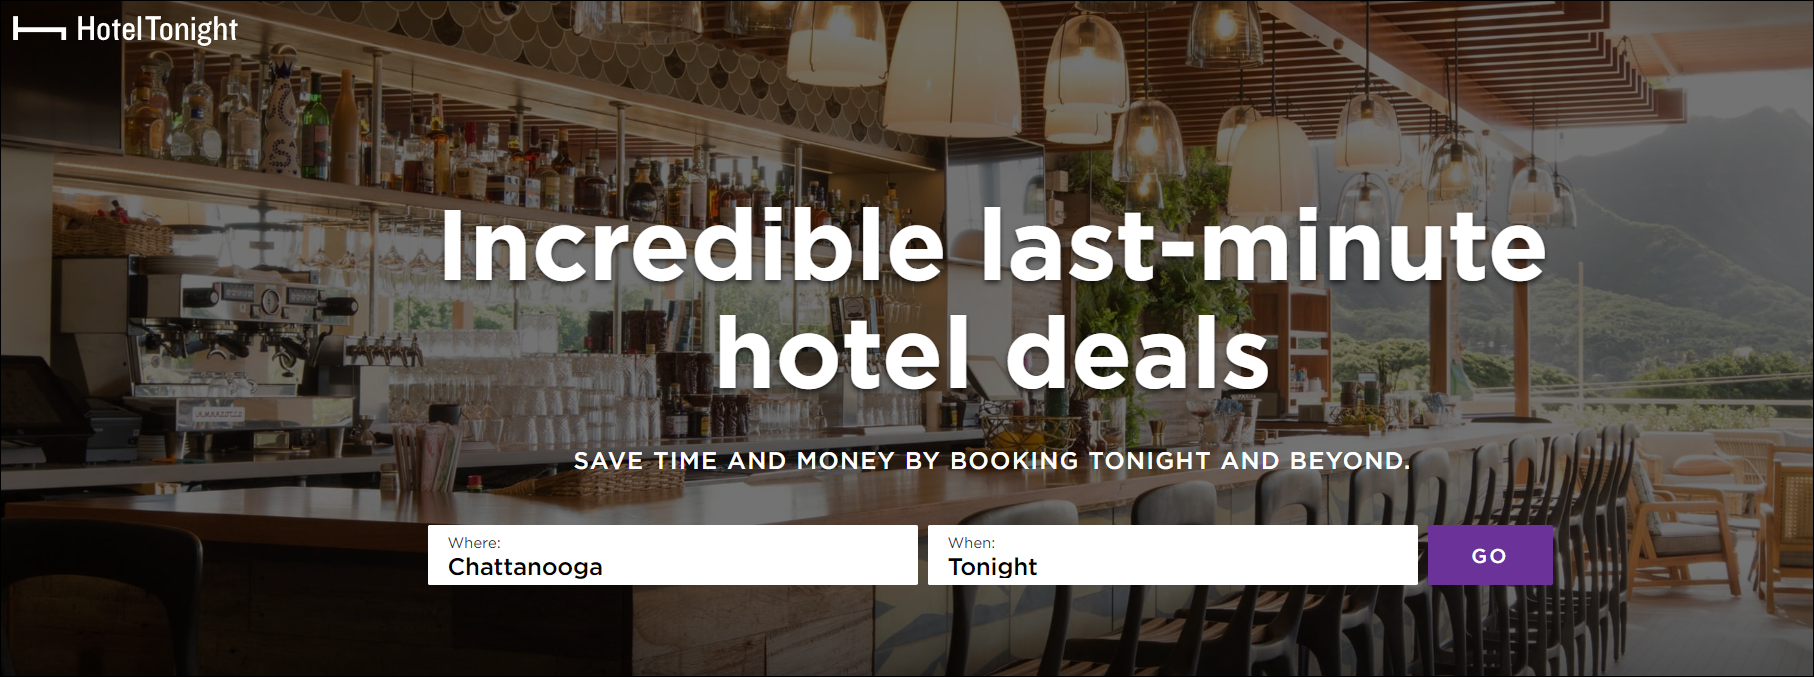 hoteltonight home page